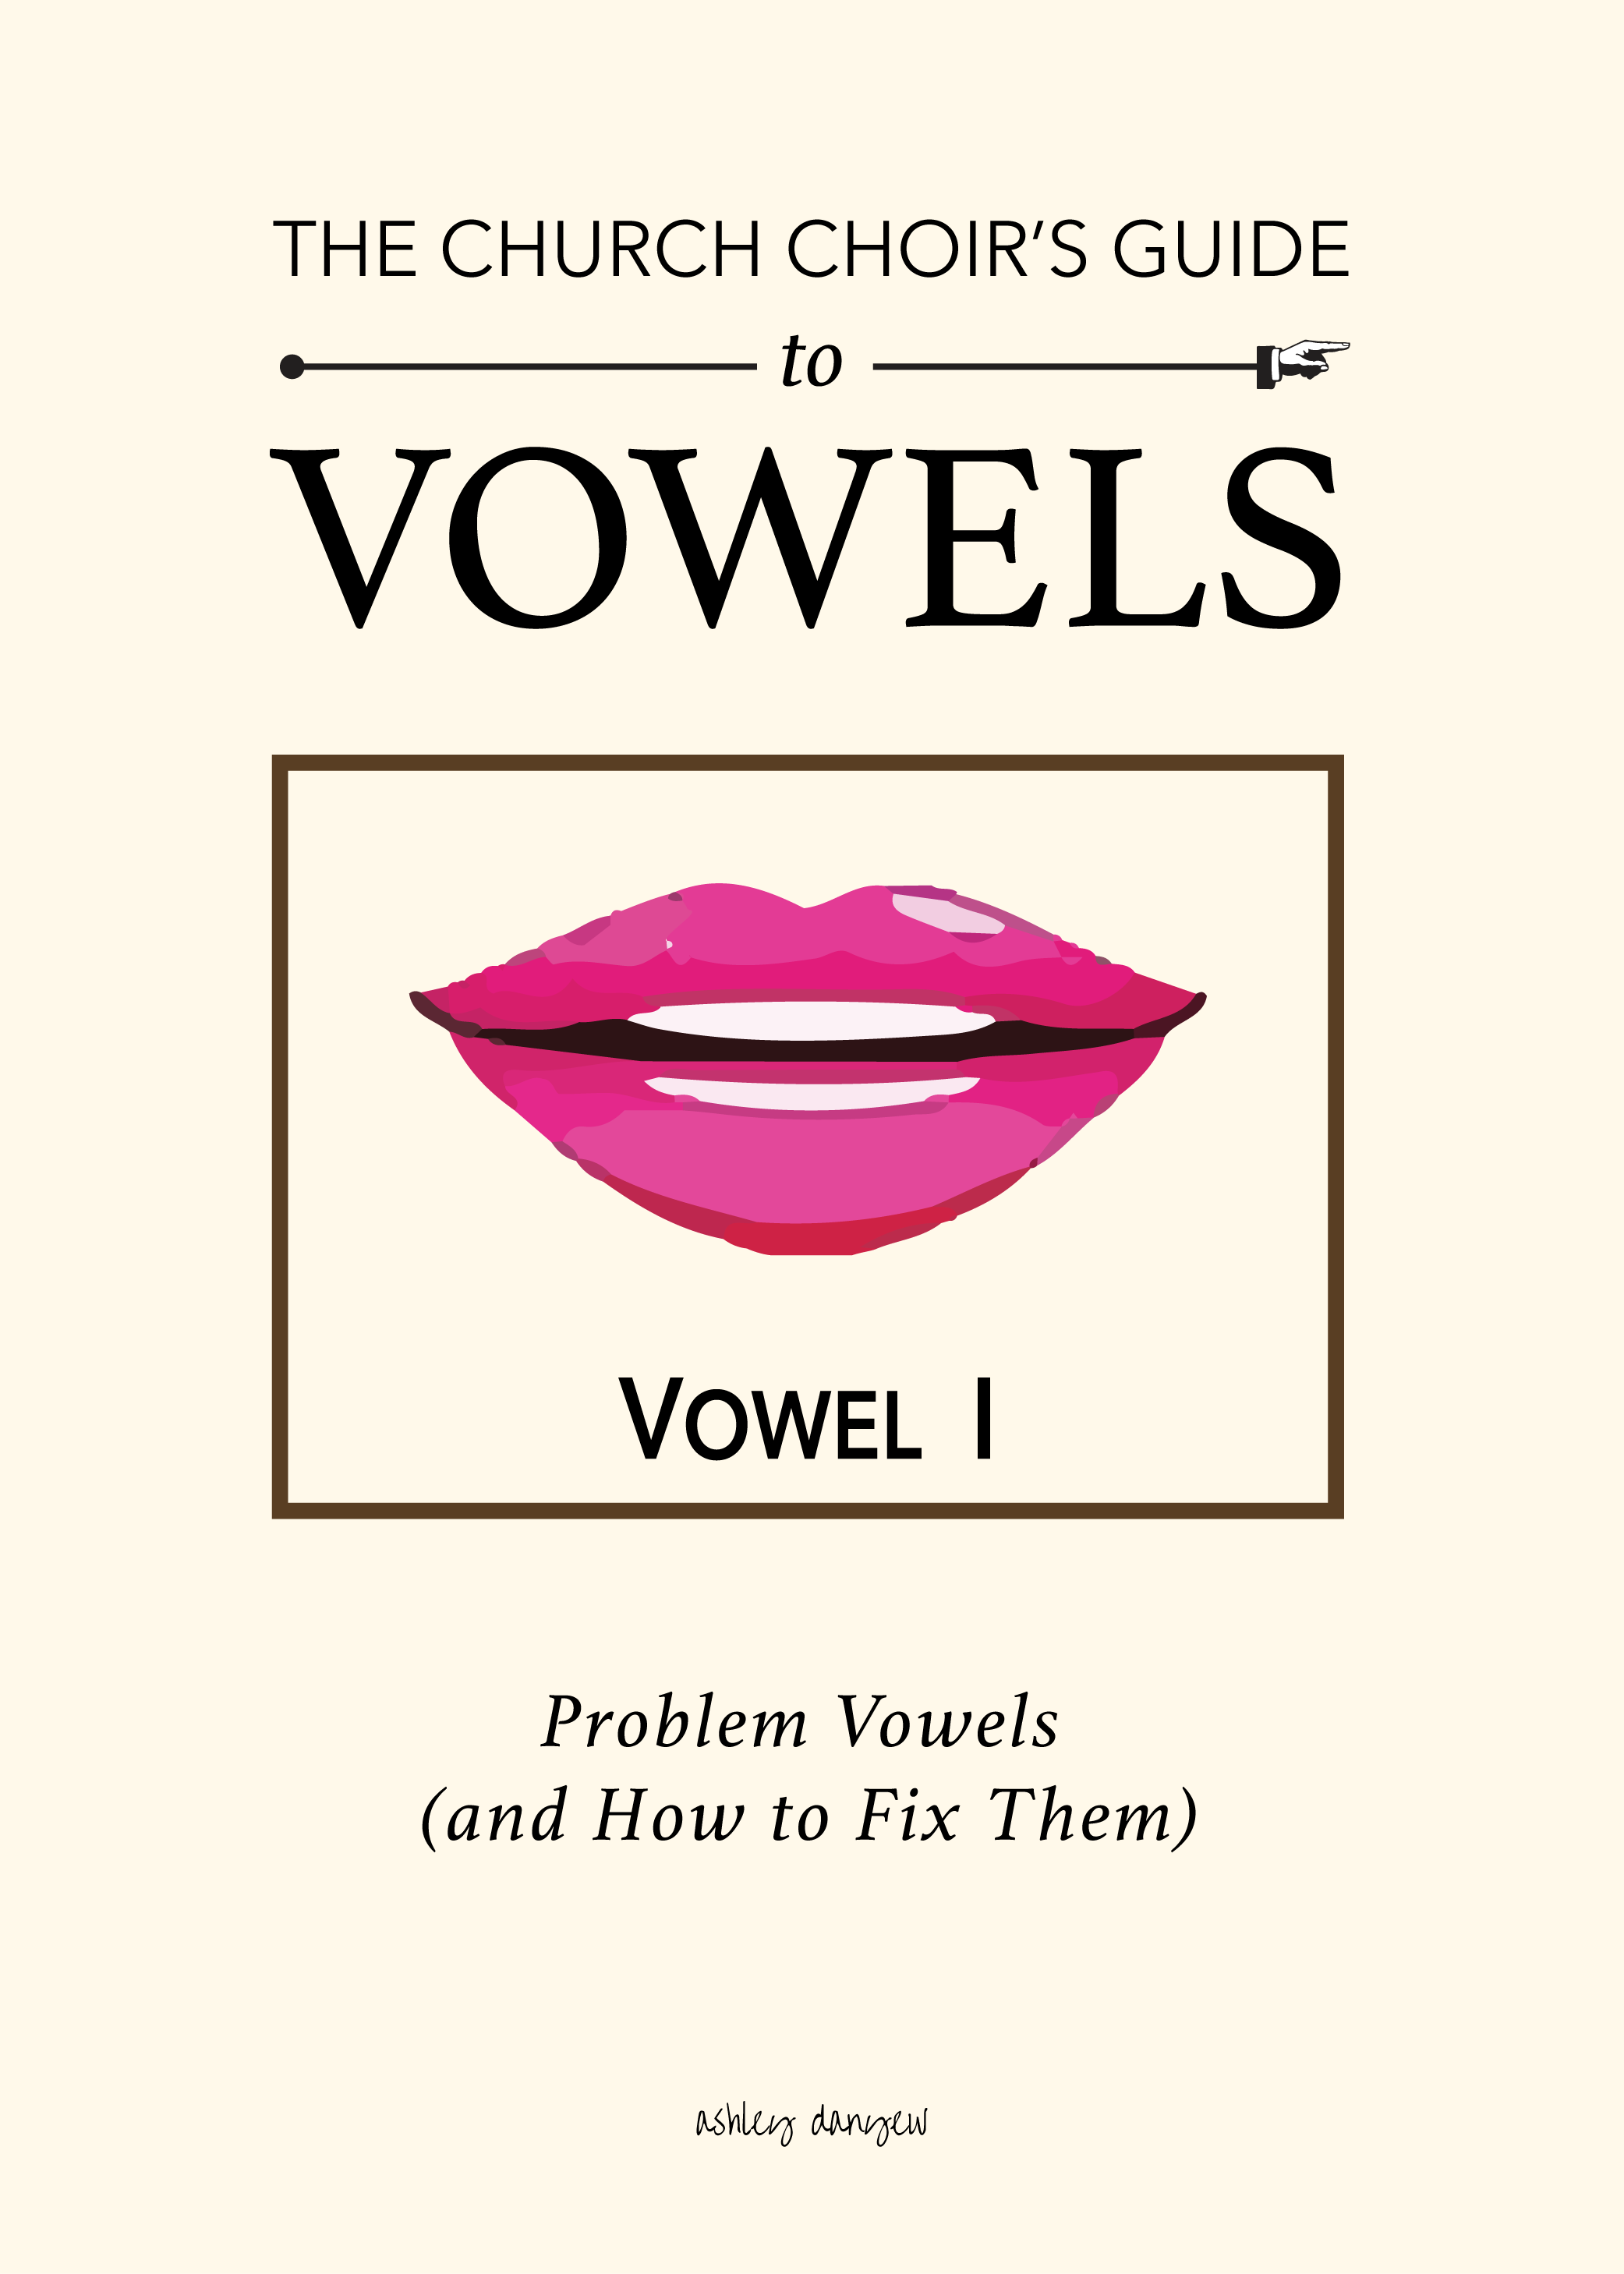 The-Church-Choirs-Guide-to-Vowels-03.png